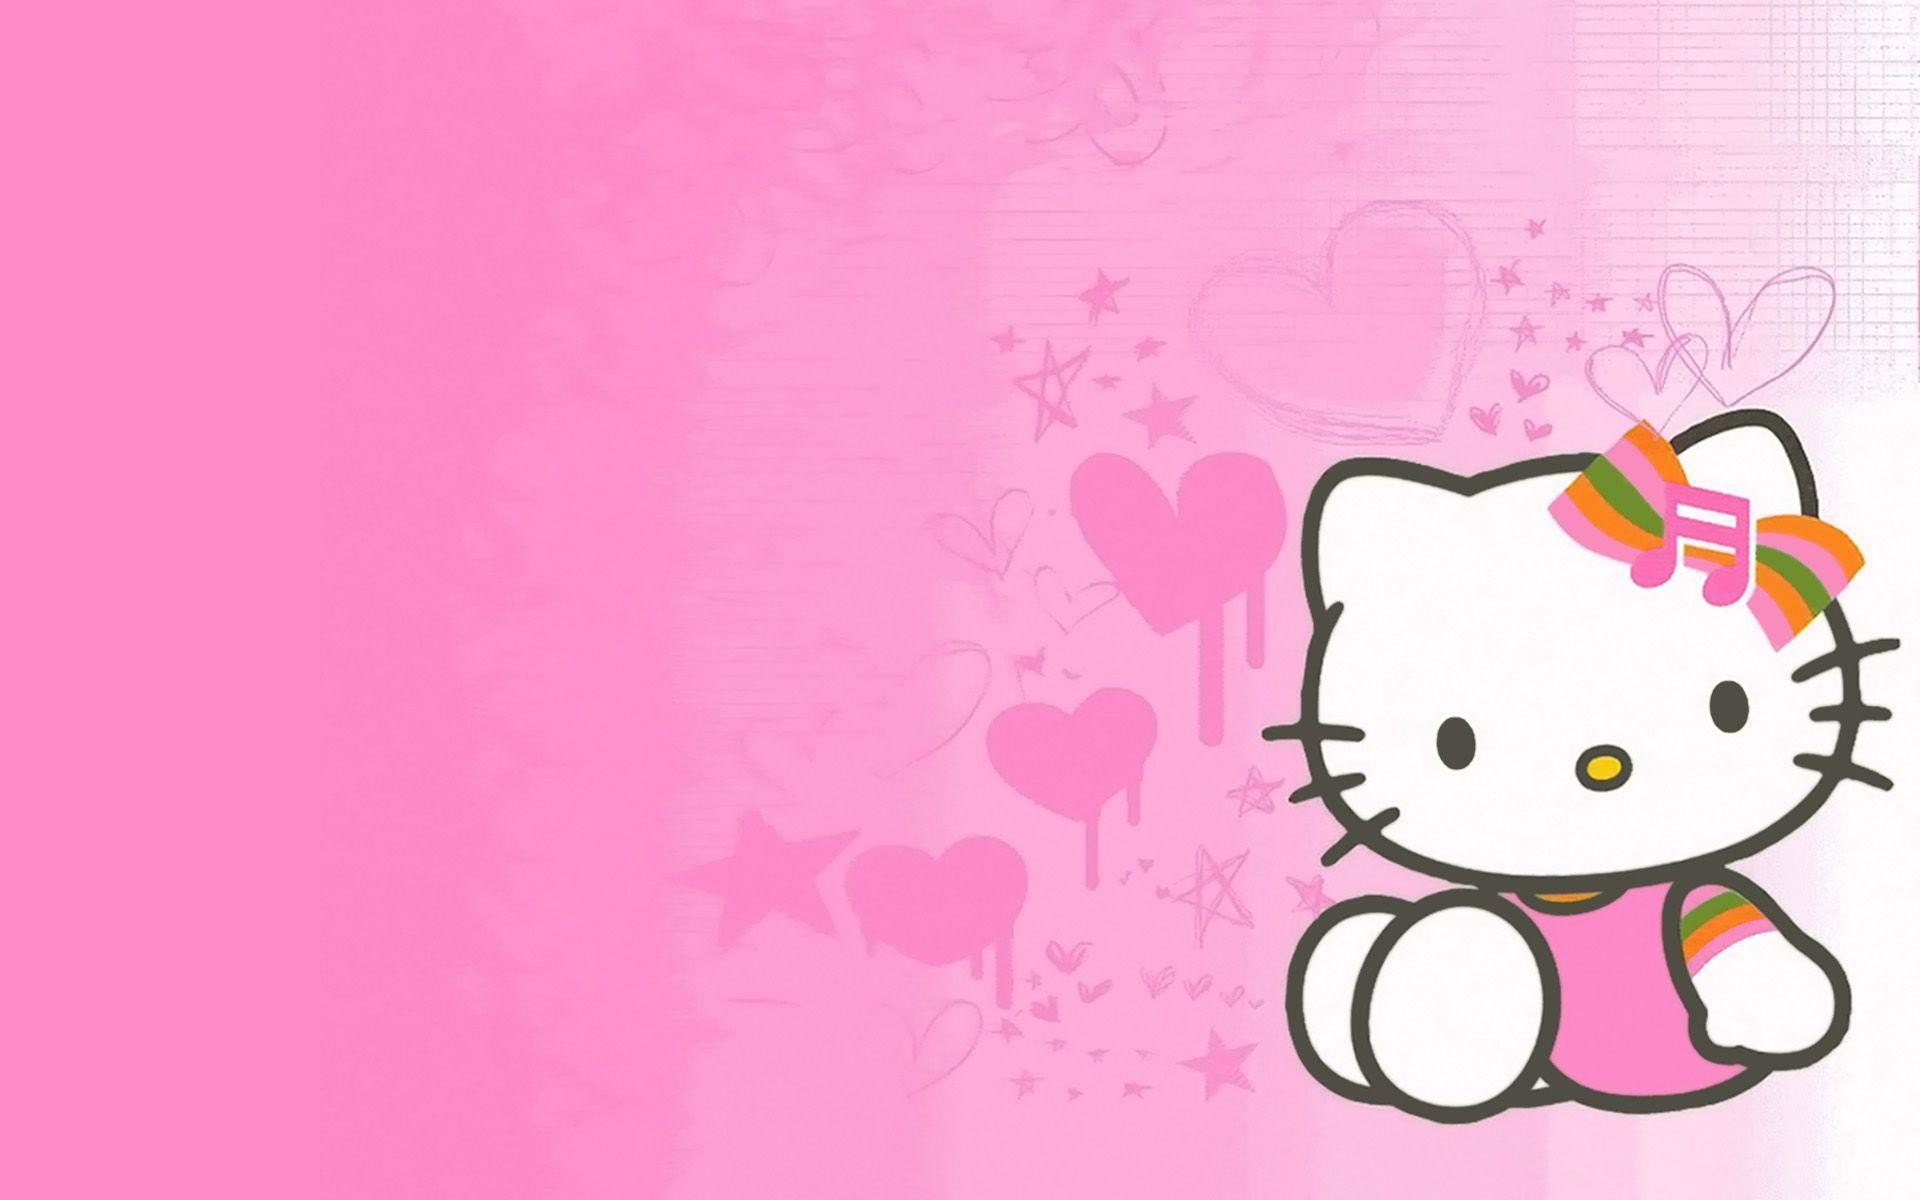 1920x1200 Hello Kitty Wallpapers - HD Wallpapers Inn